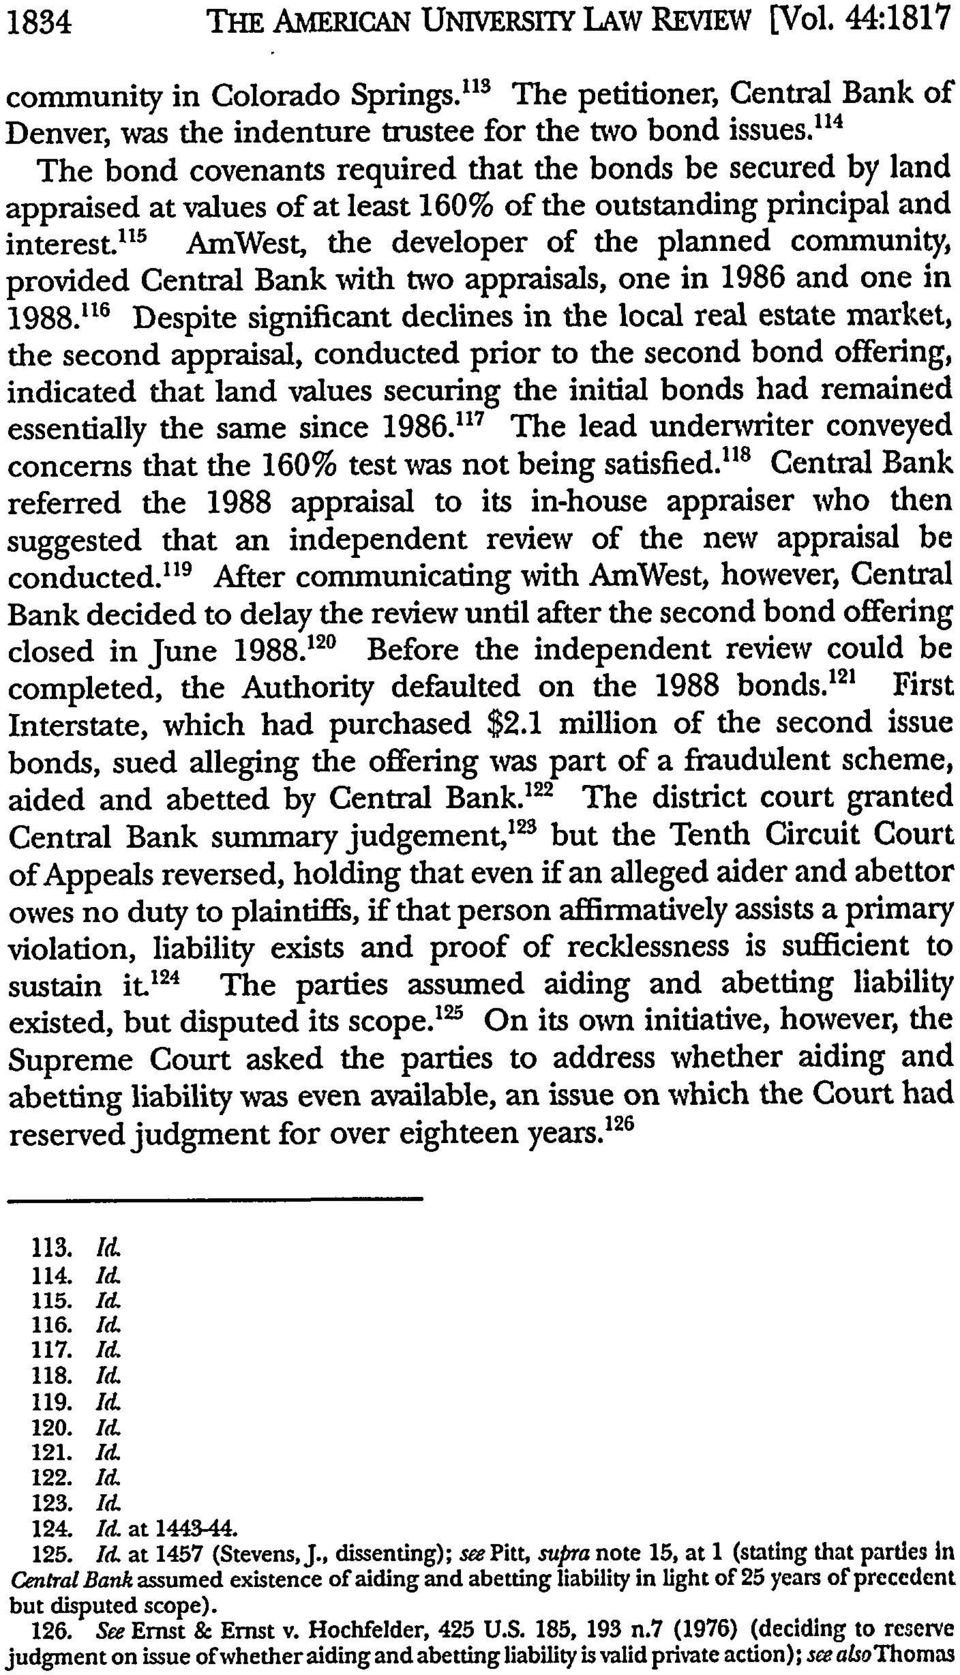 """ 5 AmWest, the developer of the planned community, provided Central Bank with two appraisals, one in 1986 and one in 1988."